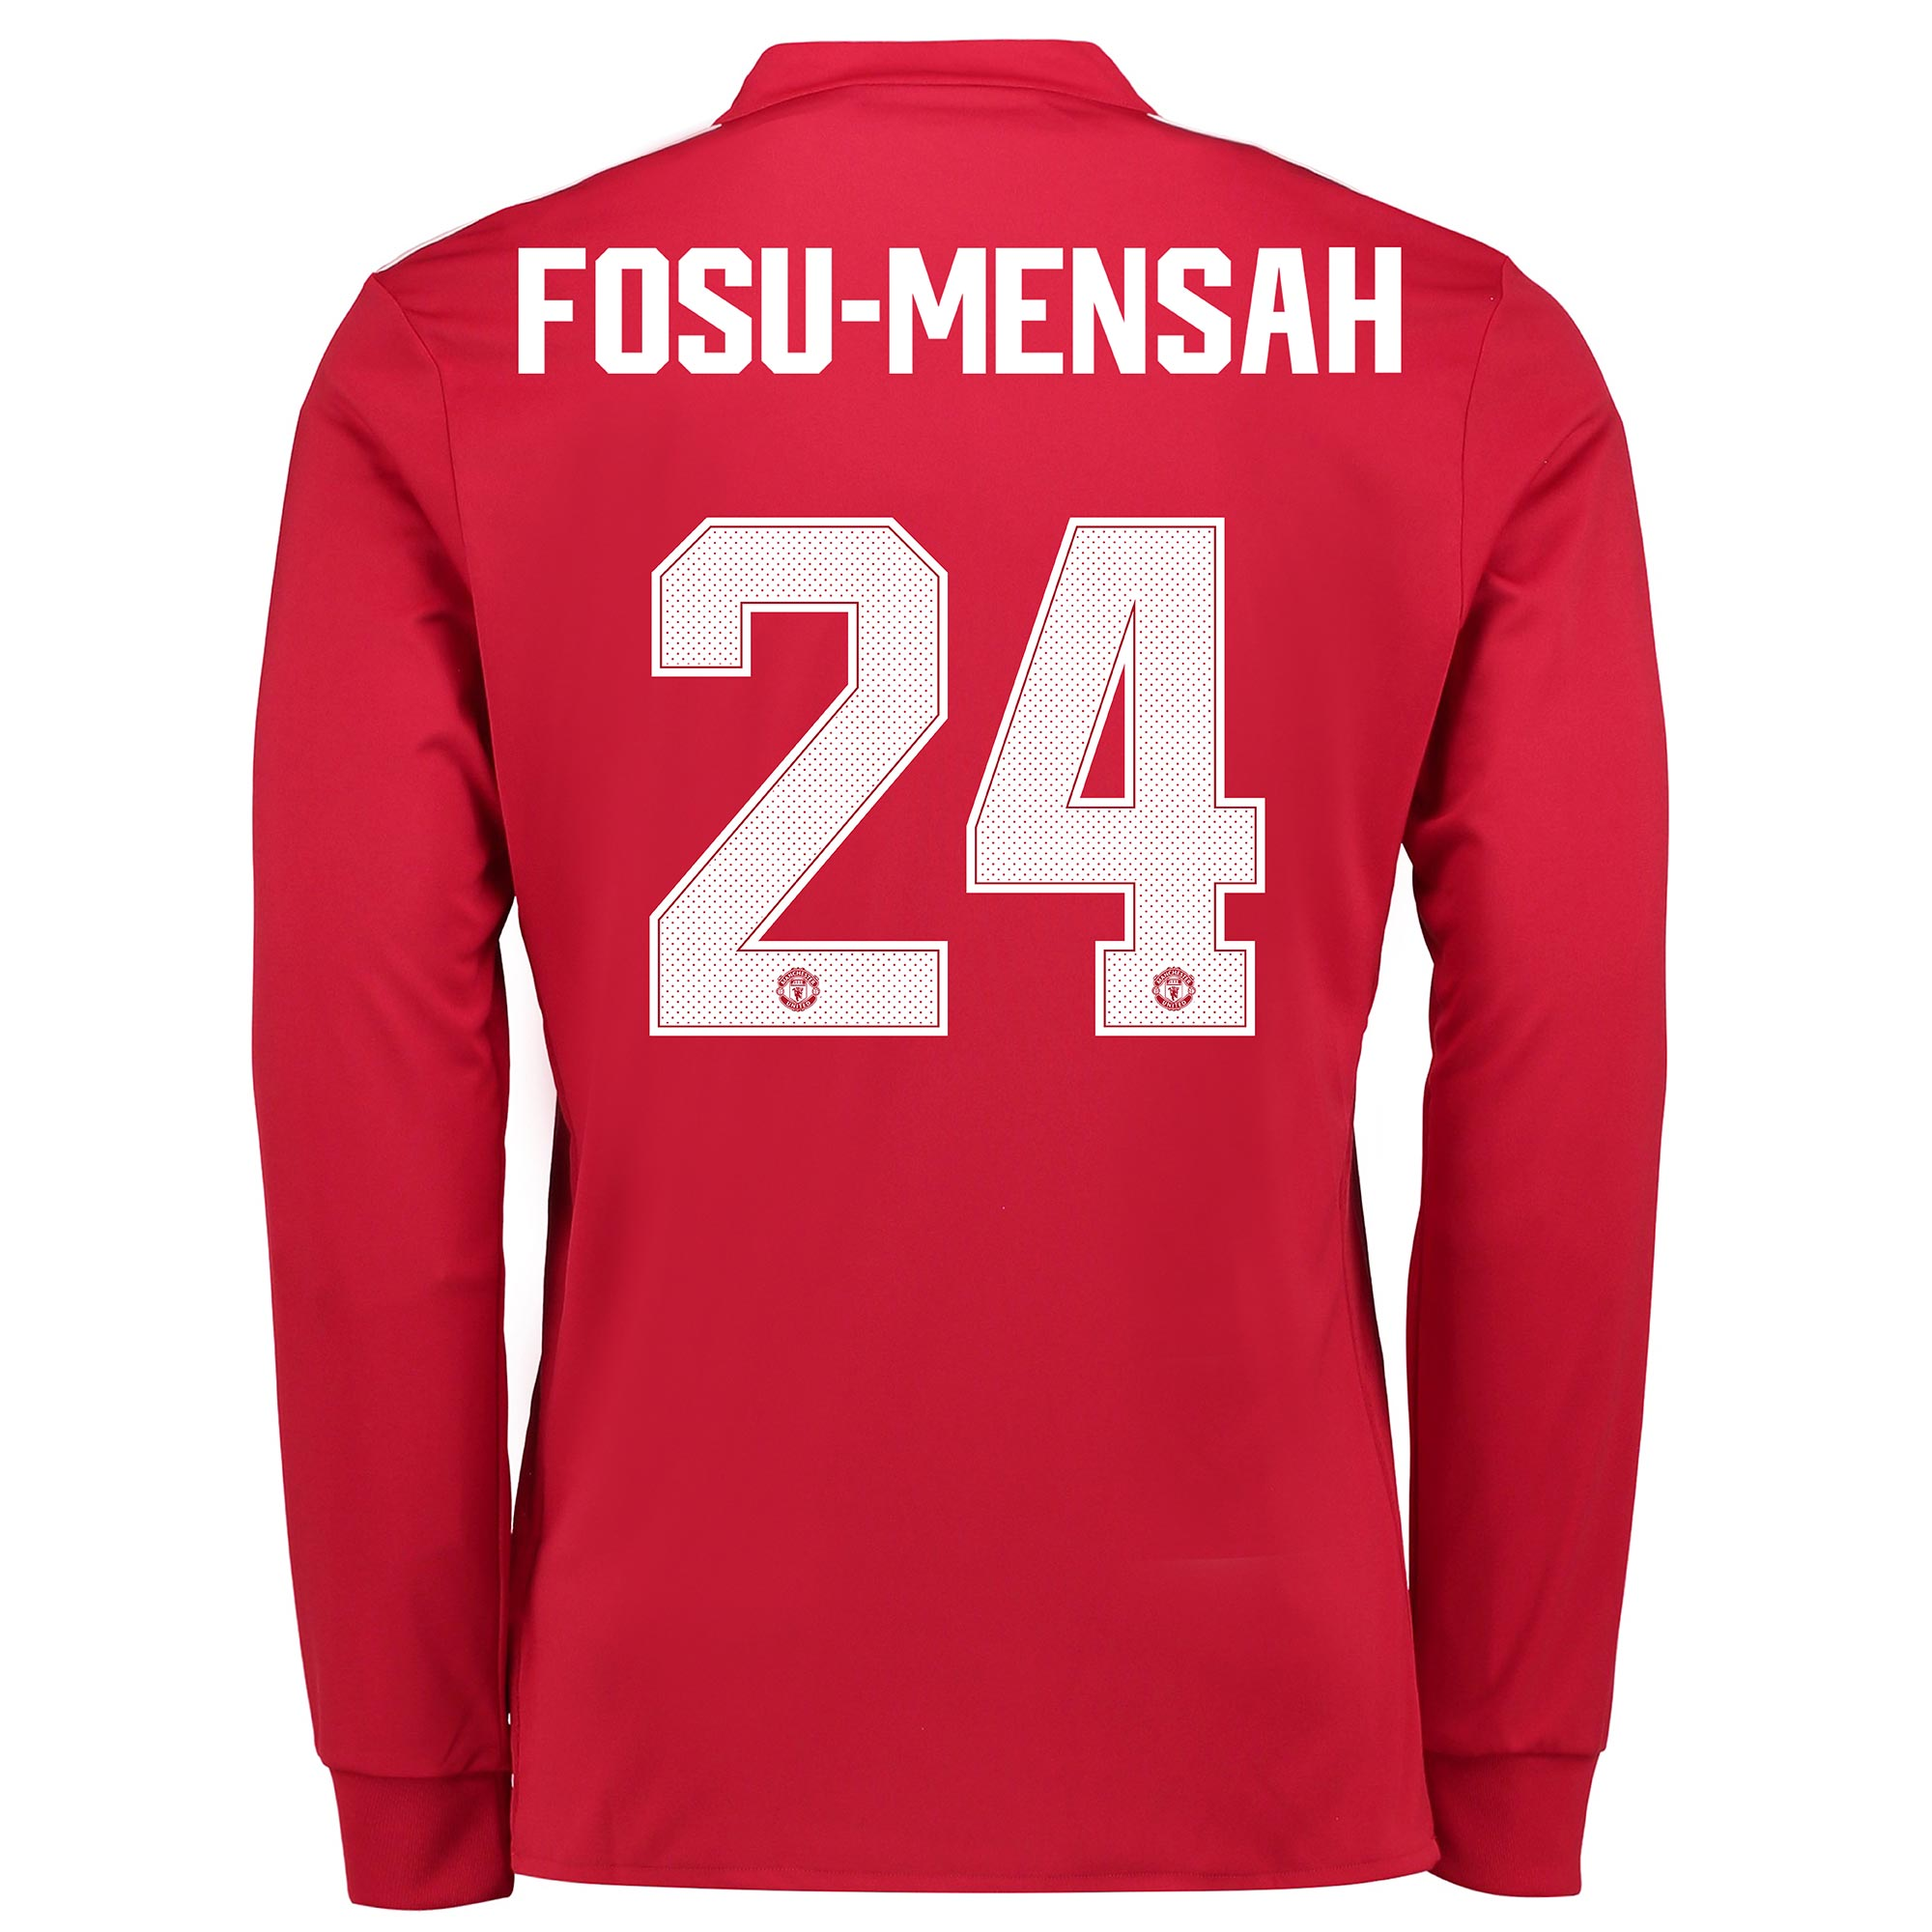 Manchester United Home Cup Shirt 2017-18 - Long Sleeve with Fosu-Mensa